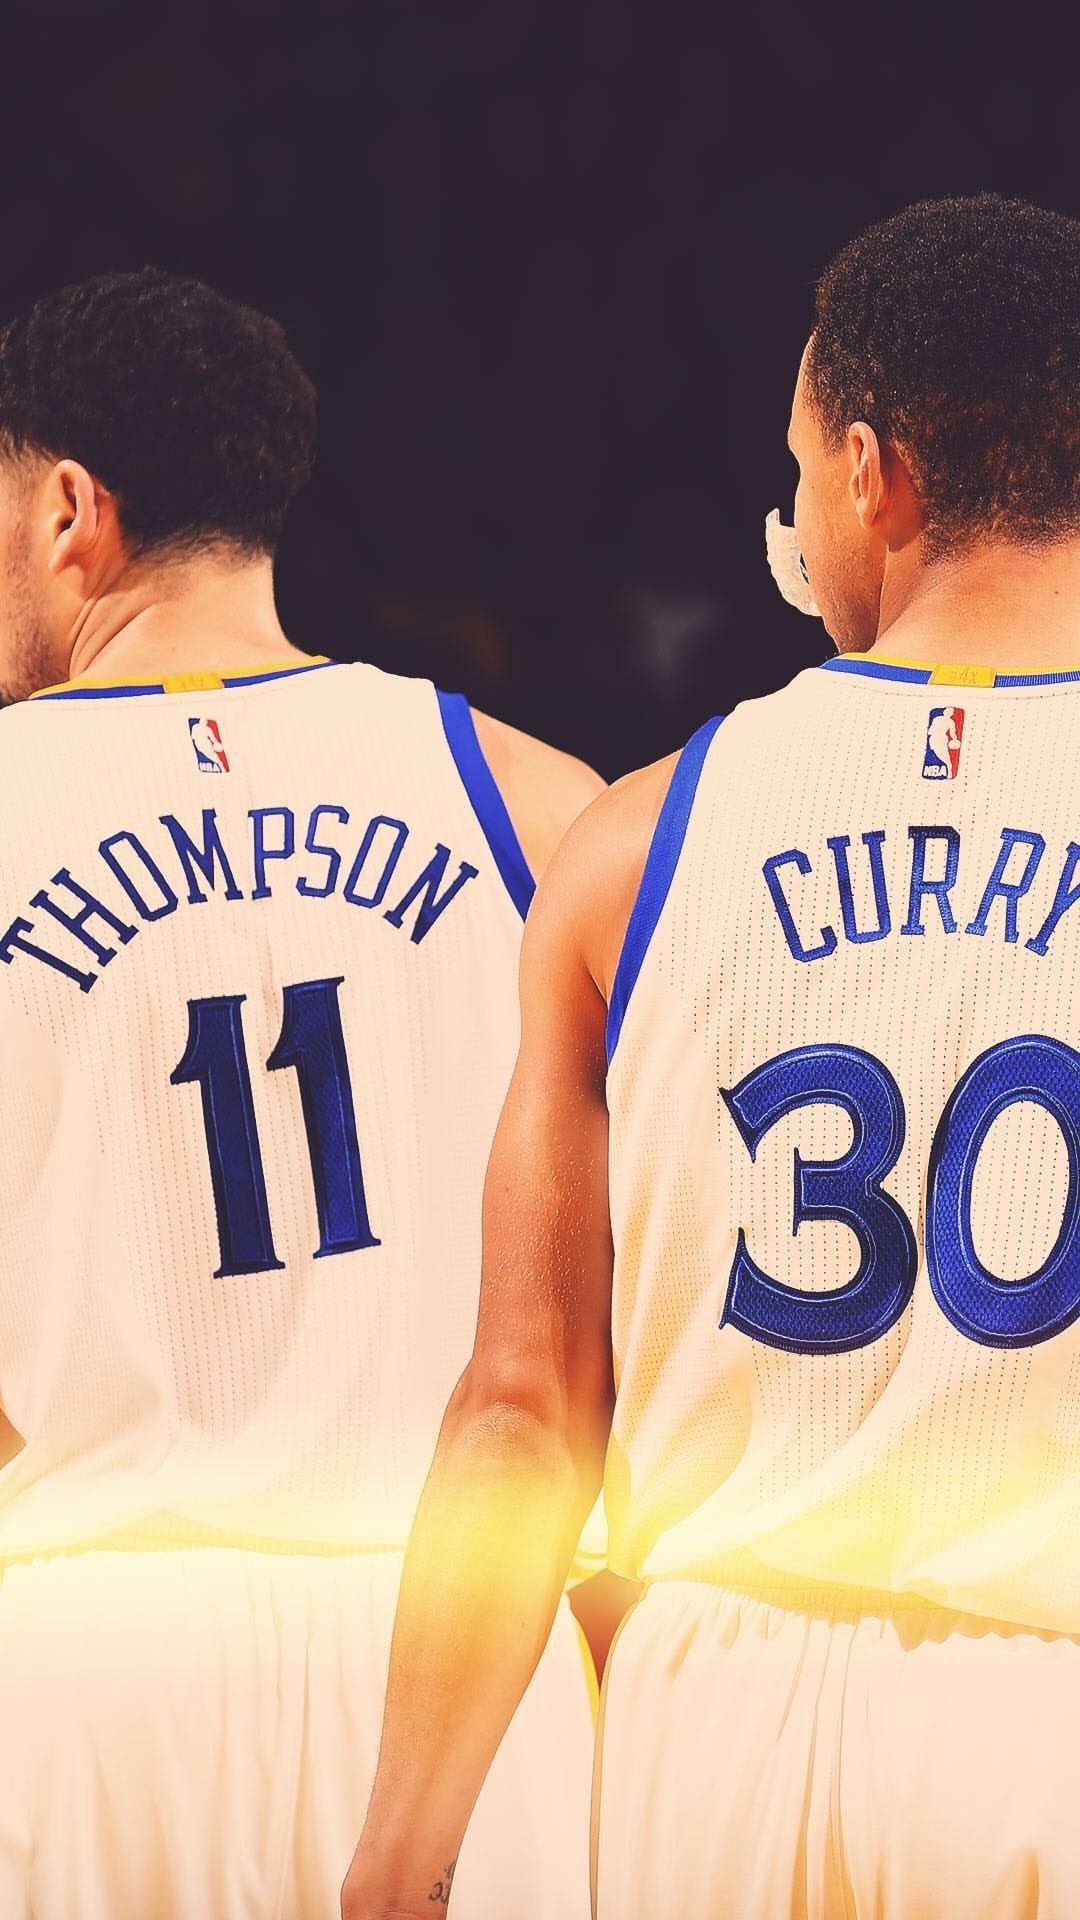 Stephen Curry And Klay Thompson Wallpaper Klay Thompson Wallpaper Stephen Curry Klay Thompson